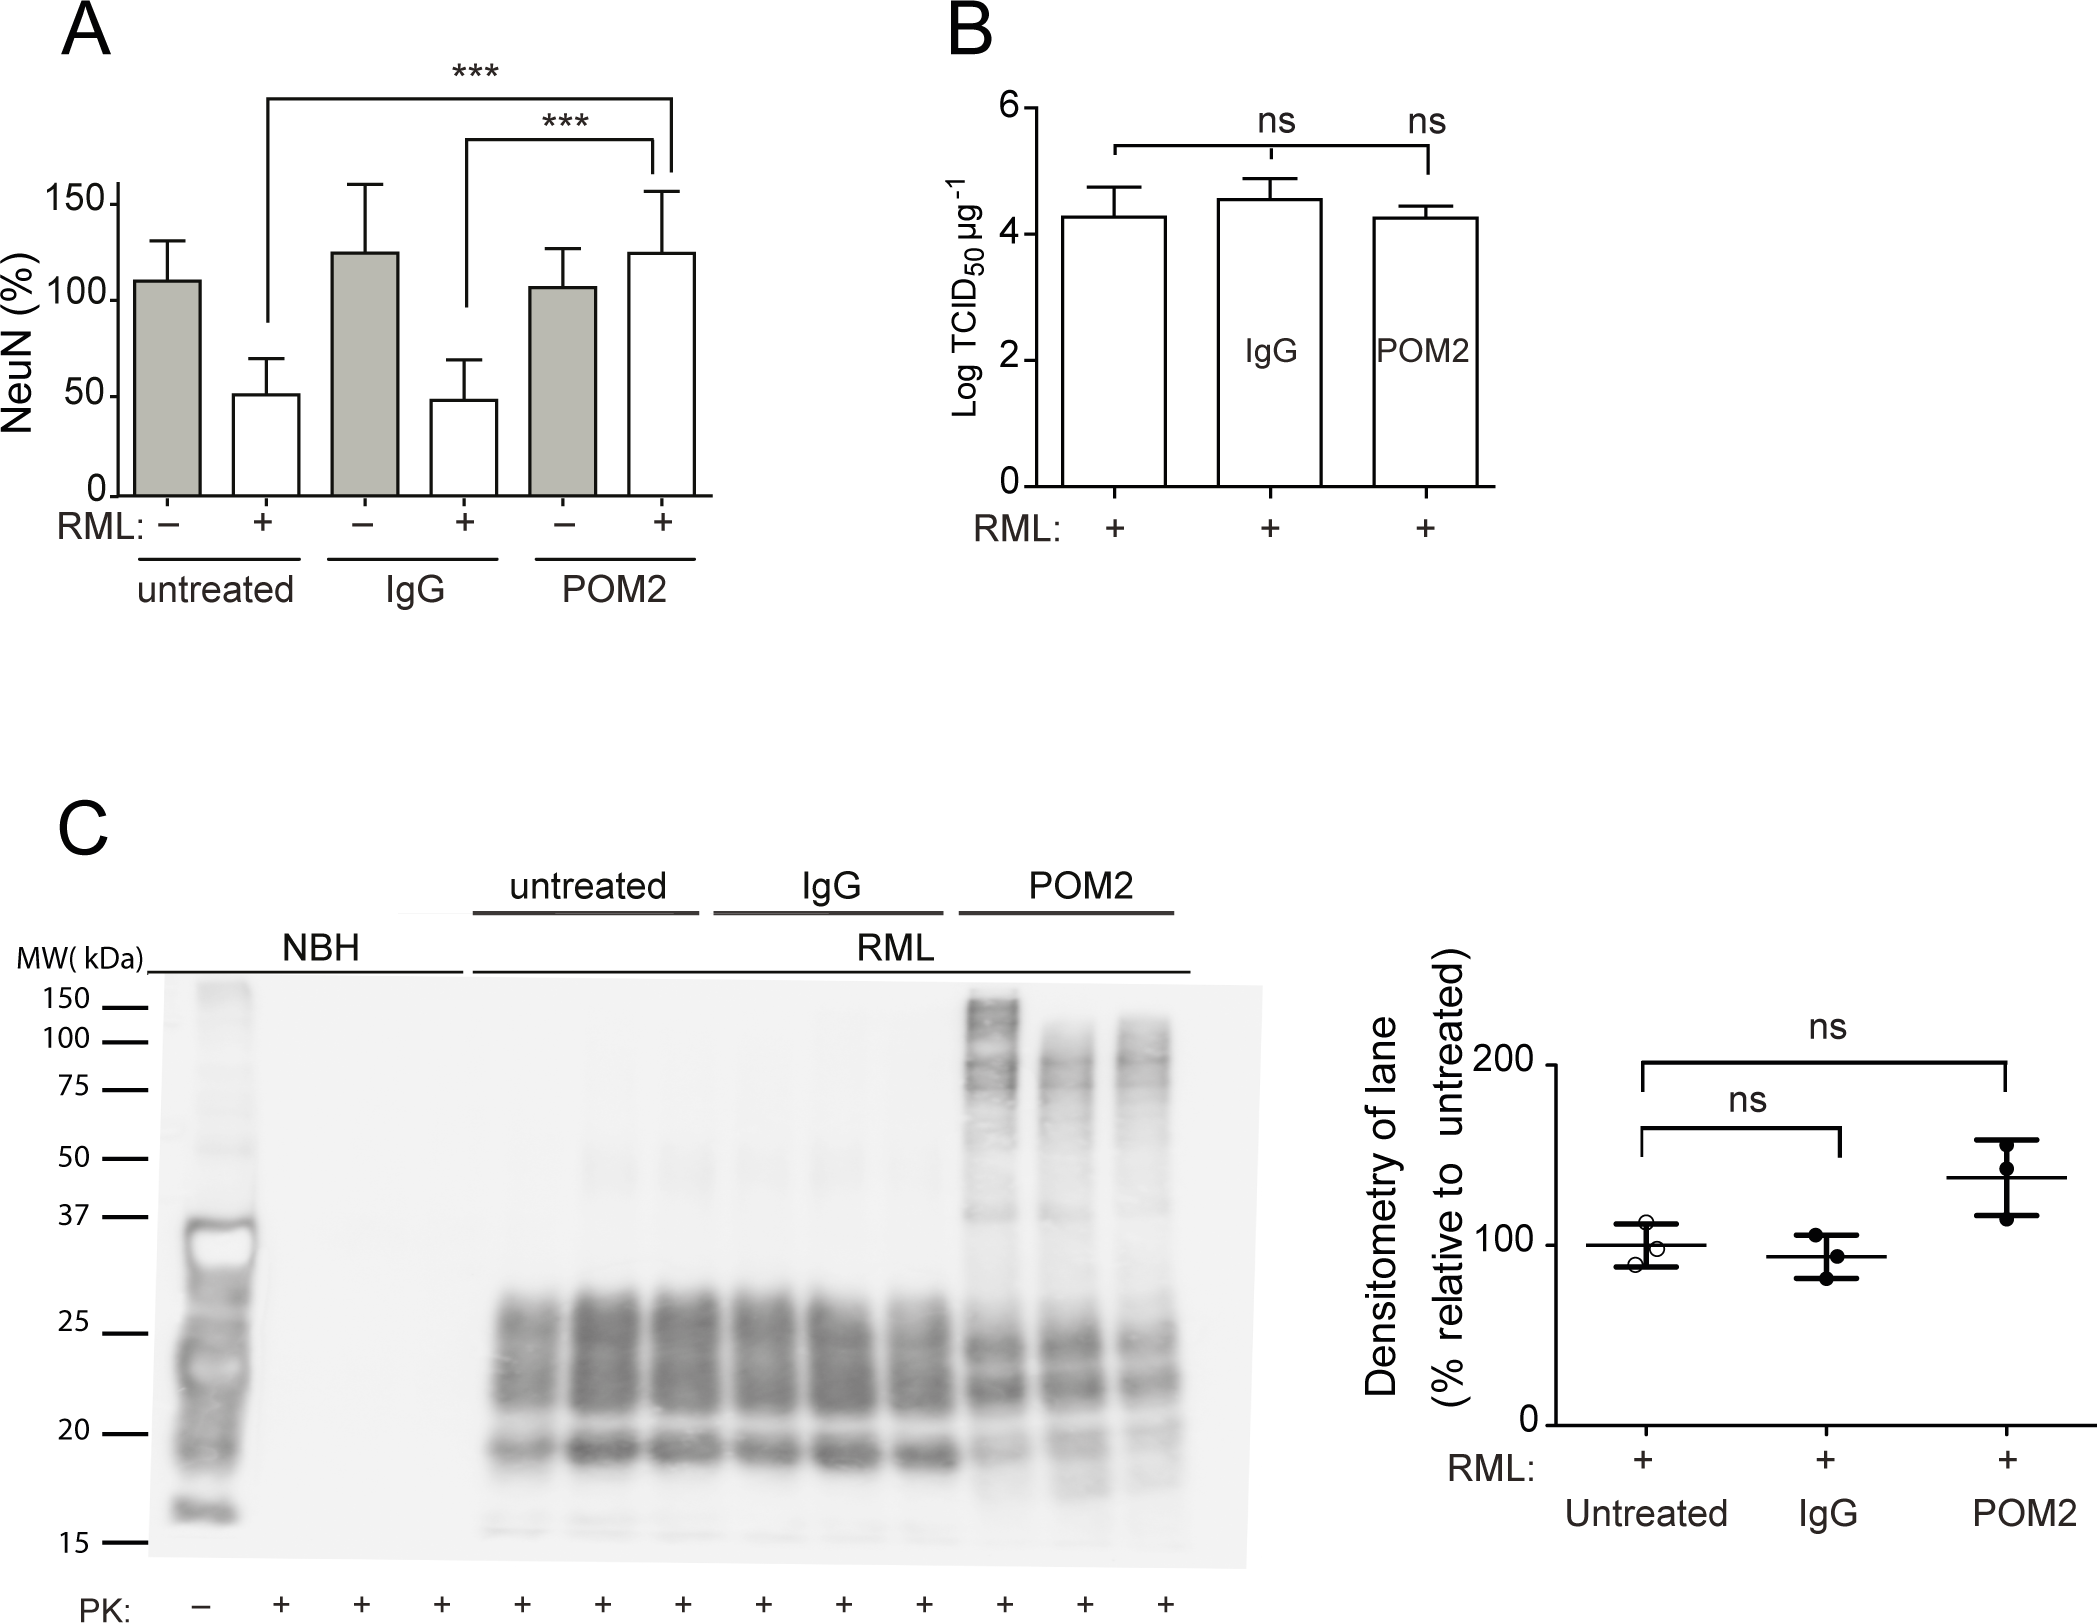 anti-FT antibody POM2 counteracts prion-induced neurotoxicity in COCS.